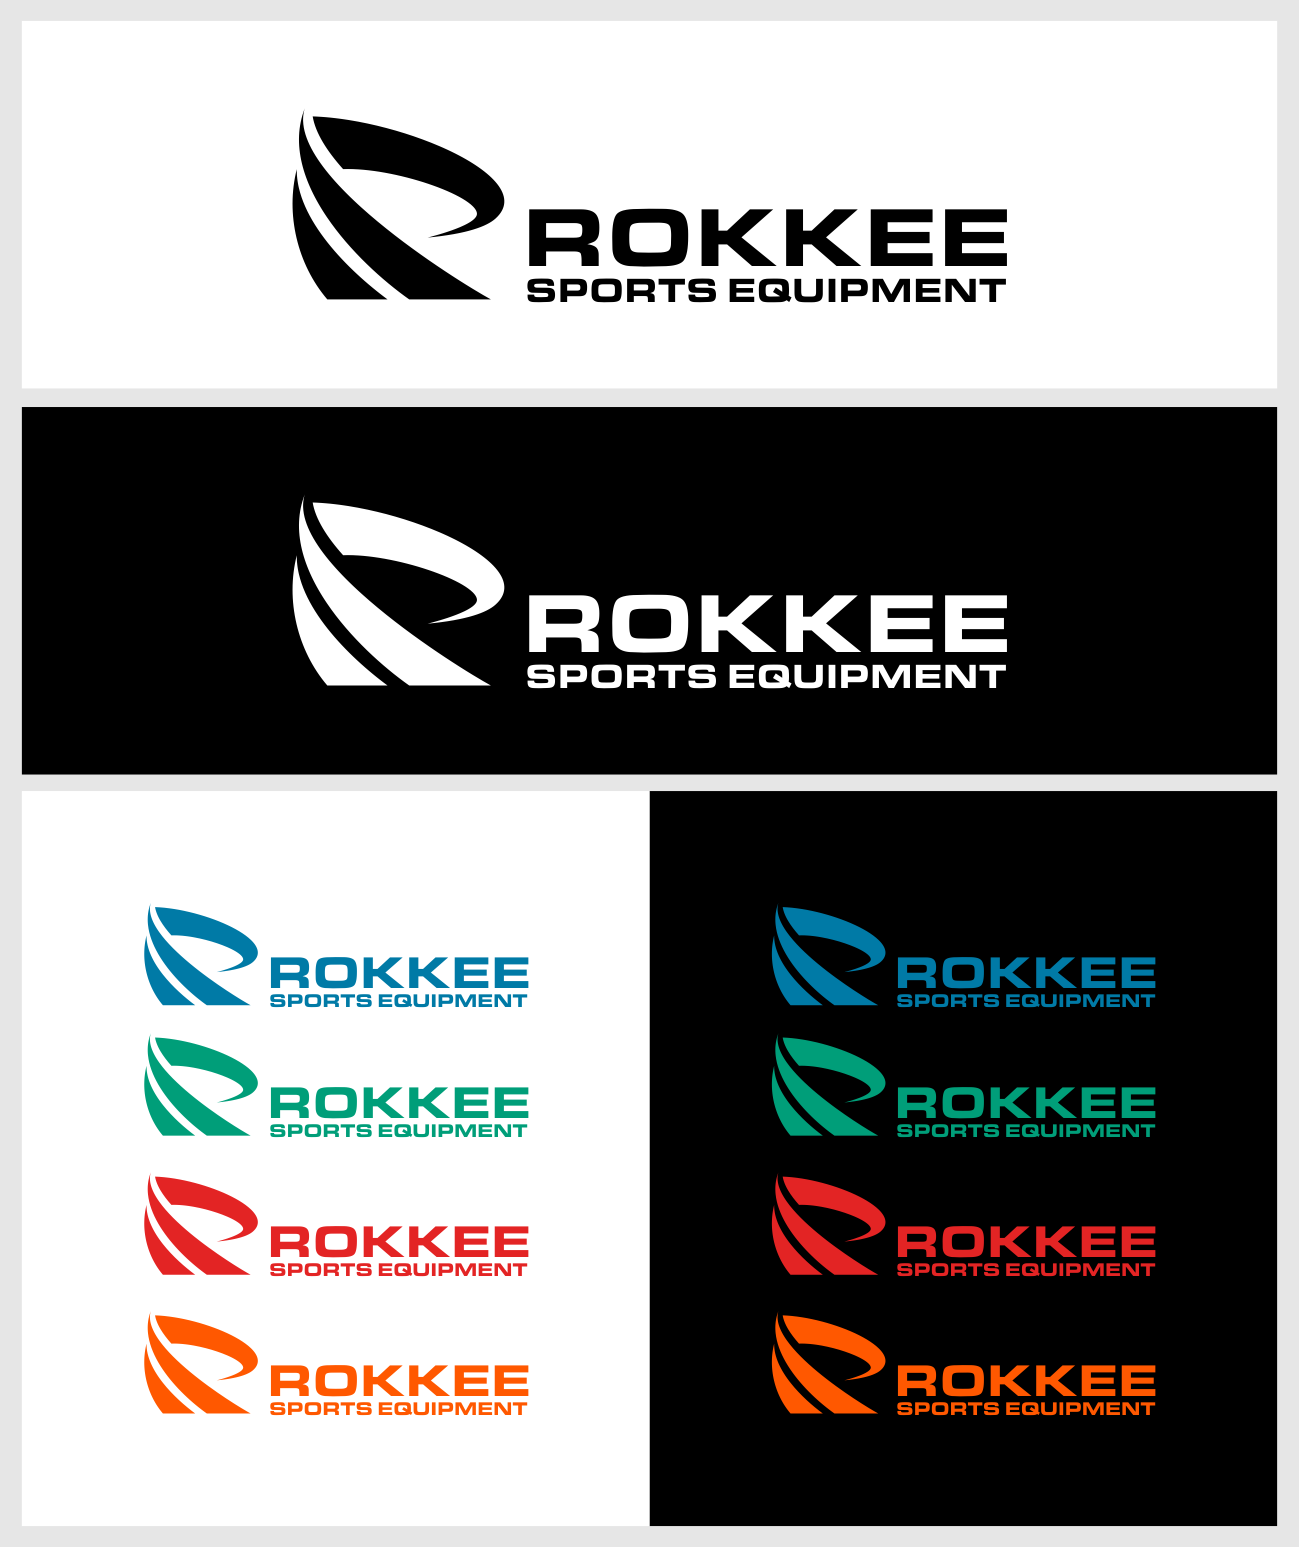 Create a most appealing knee brace logo ever for Rokkee Sports Equipment